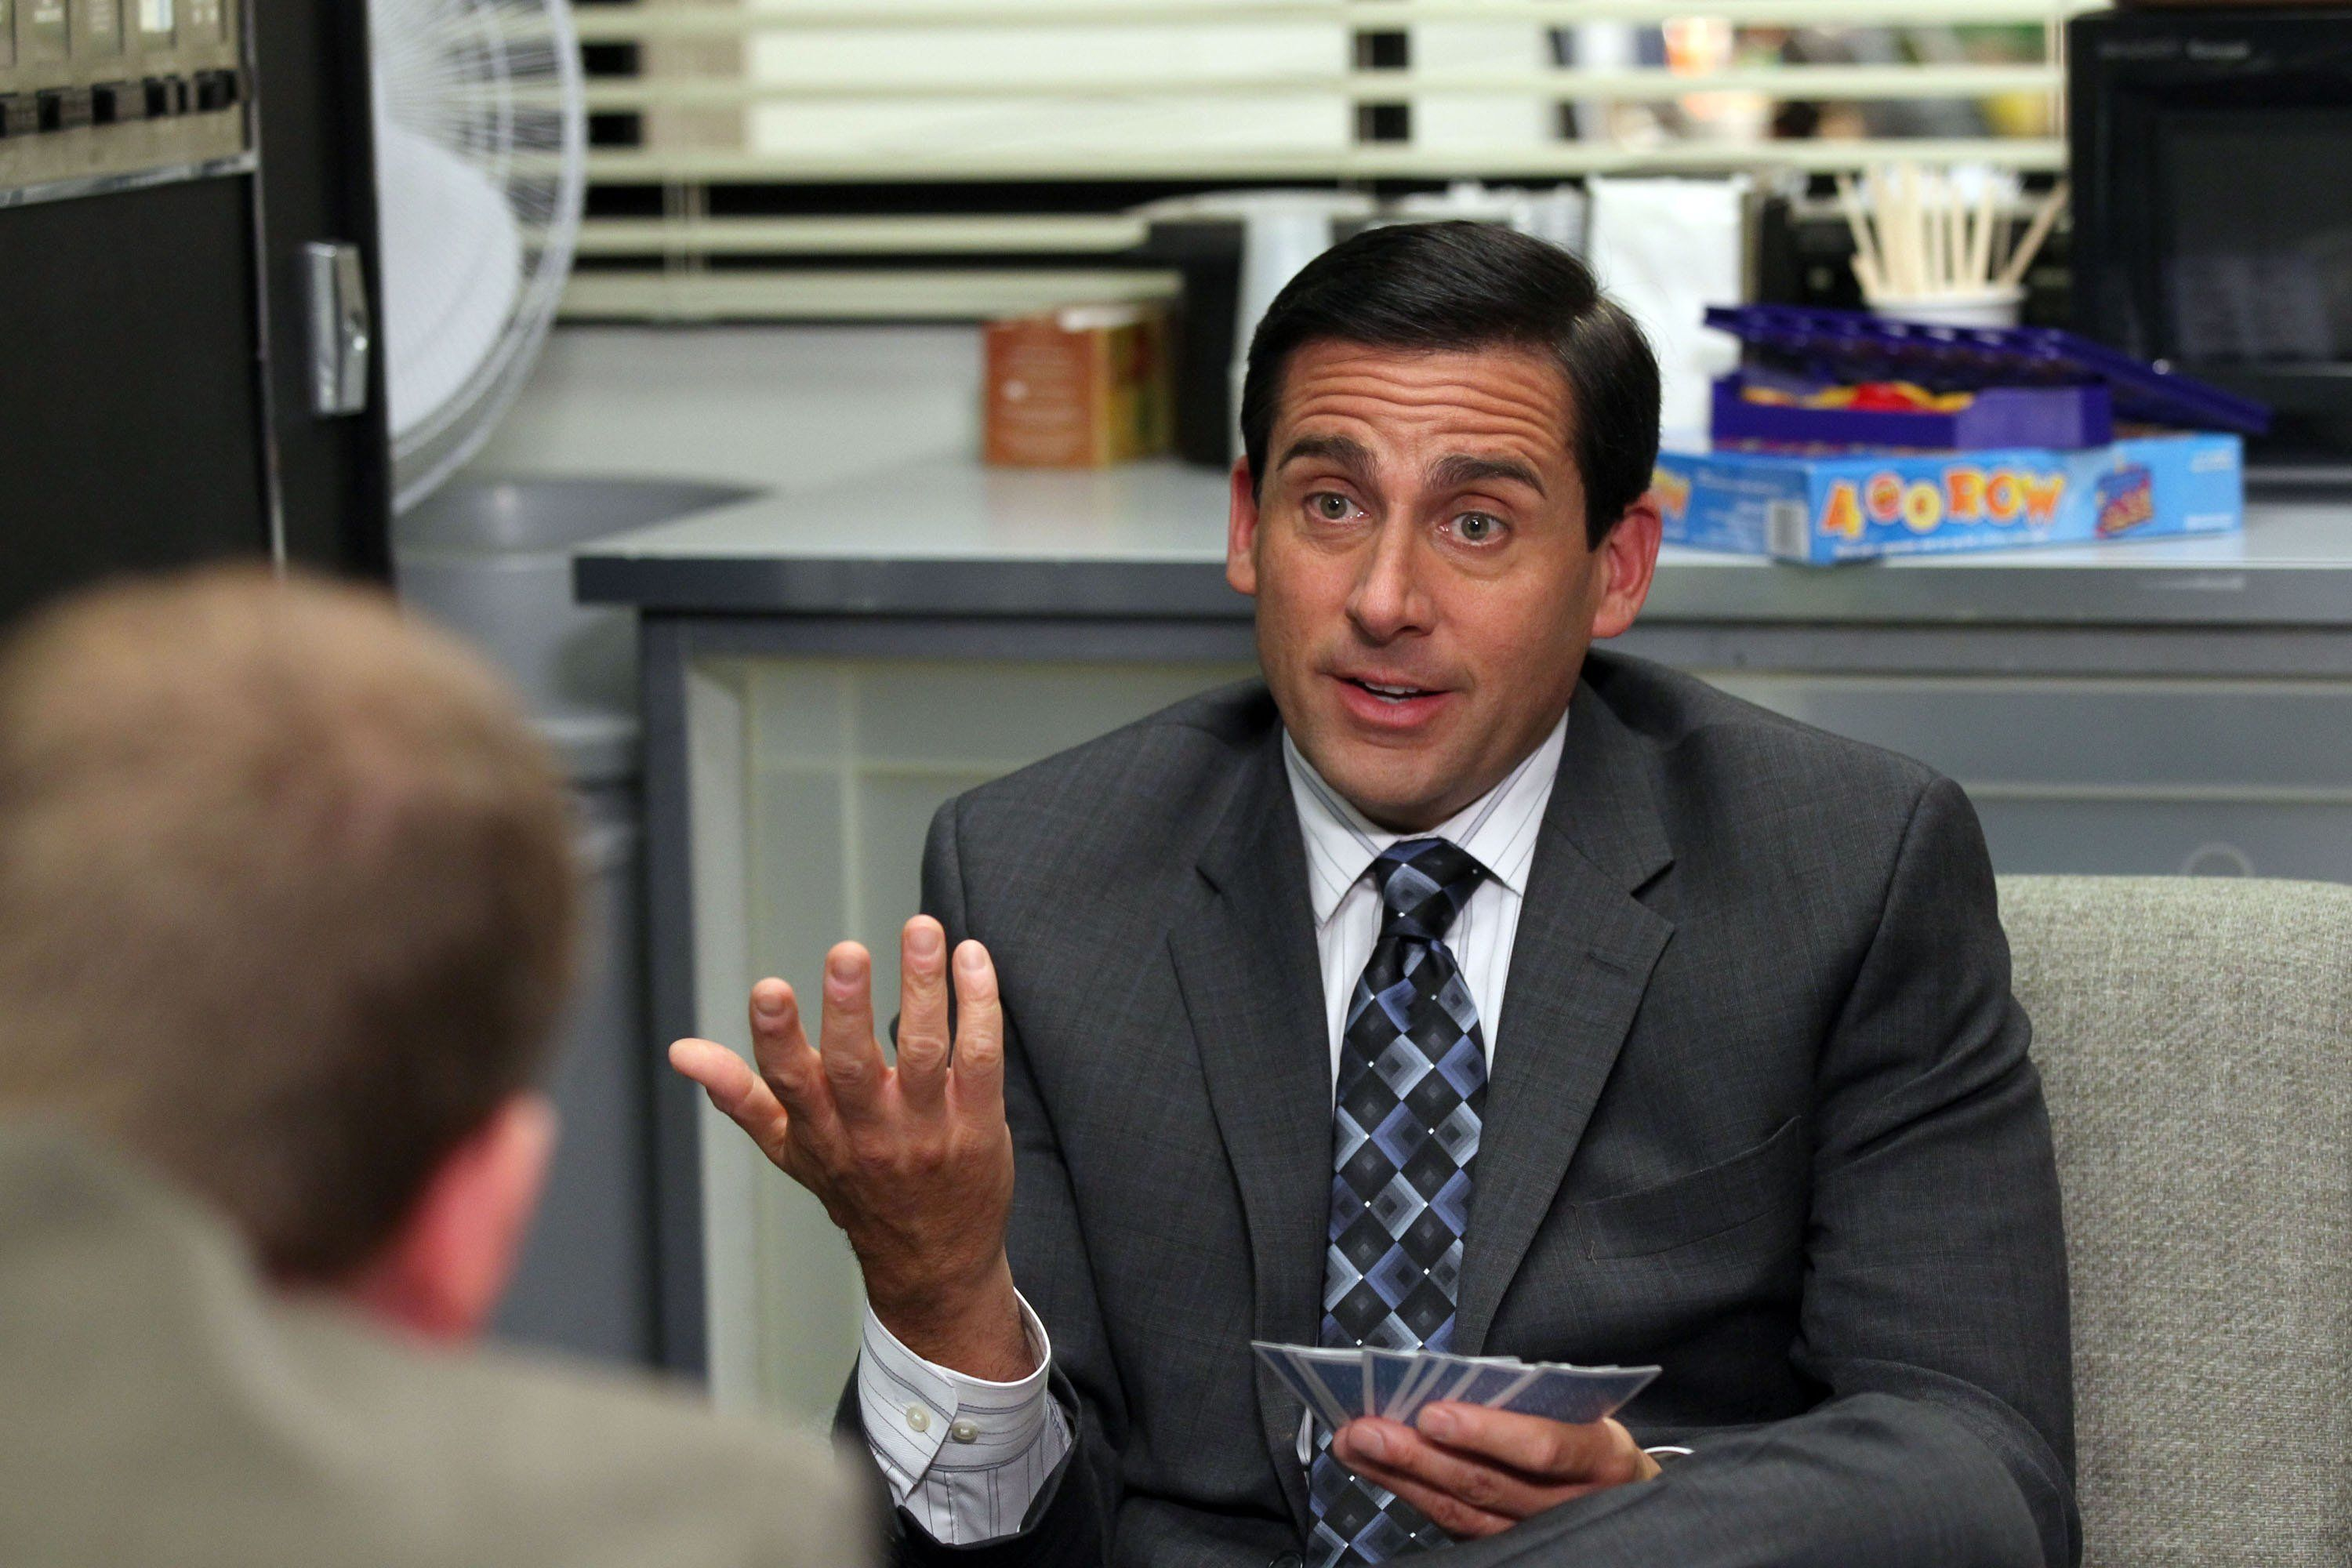 THE OFFICE -- 'Counseling' Episode 702 -- Pictured: Steve Carell as Michael Scott -- Photo by: Chris Haston/NBC/NBCU Photo Bank